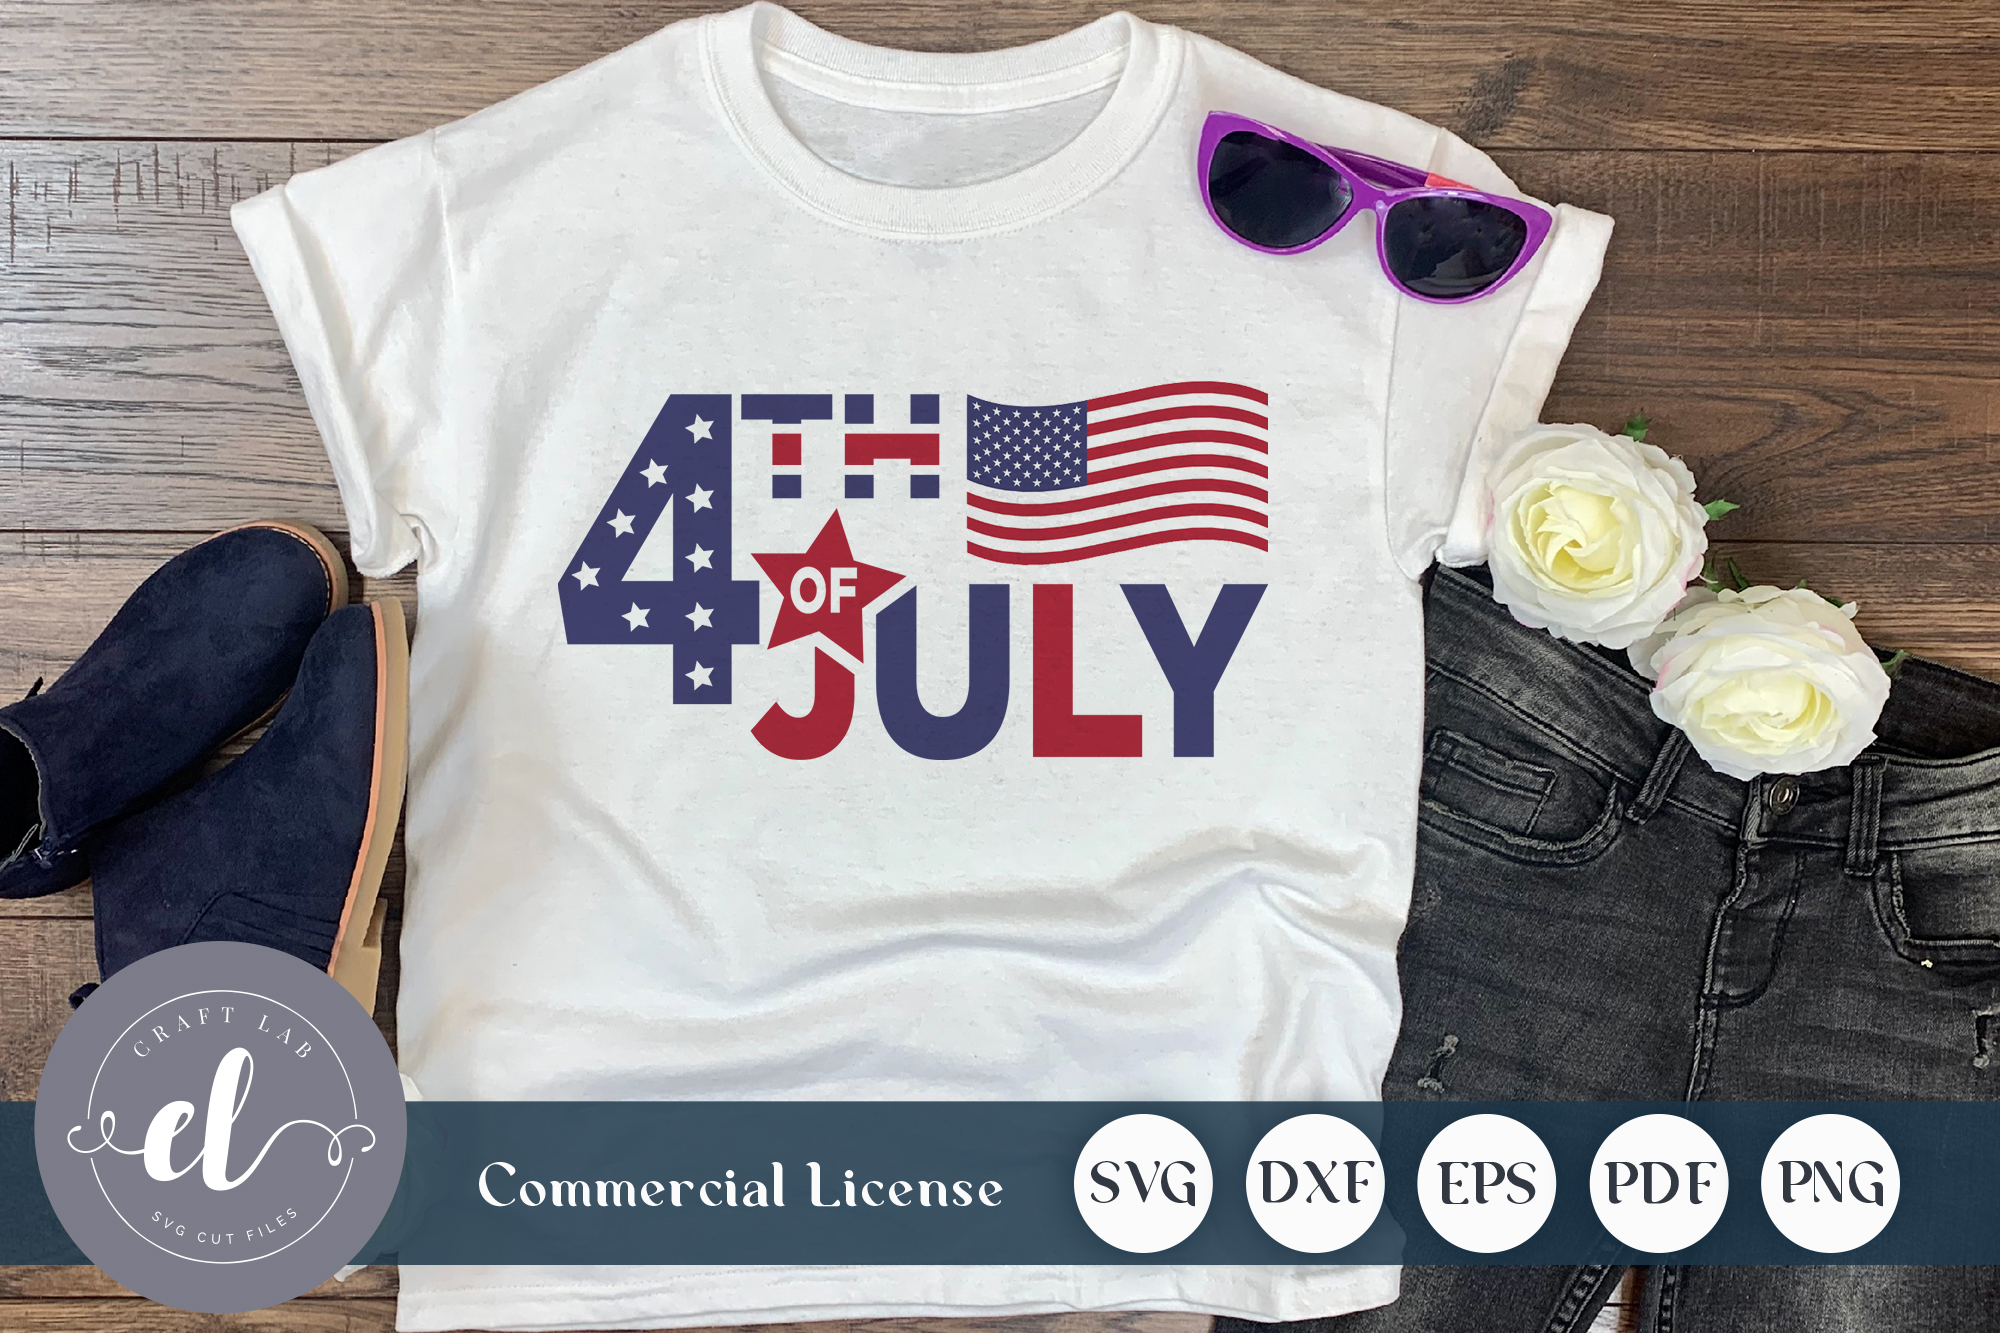 Download Free 4th Of July Graphic By Craftlabsvg Creative Fabrica for Cricut Explore, Silhouette and other cutting machines.